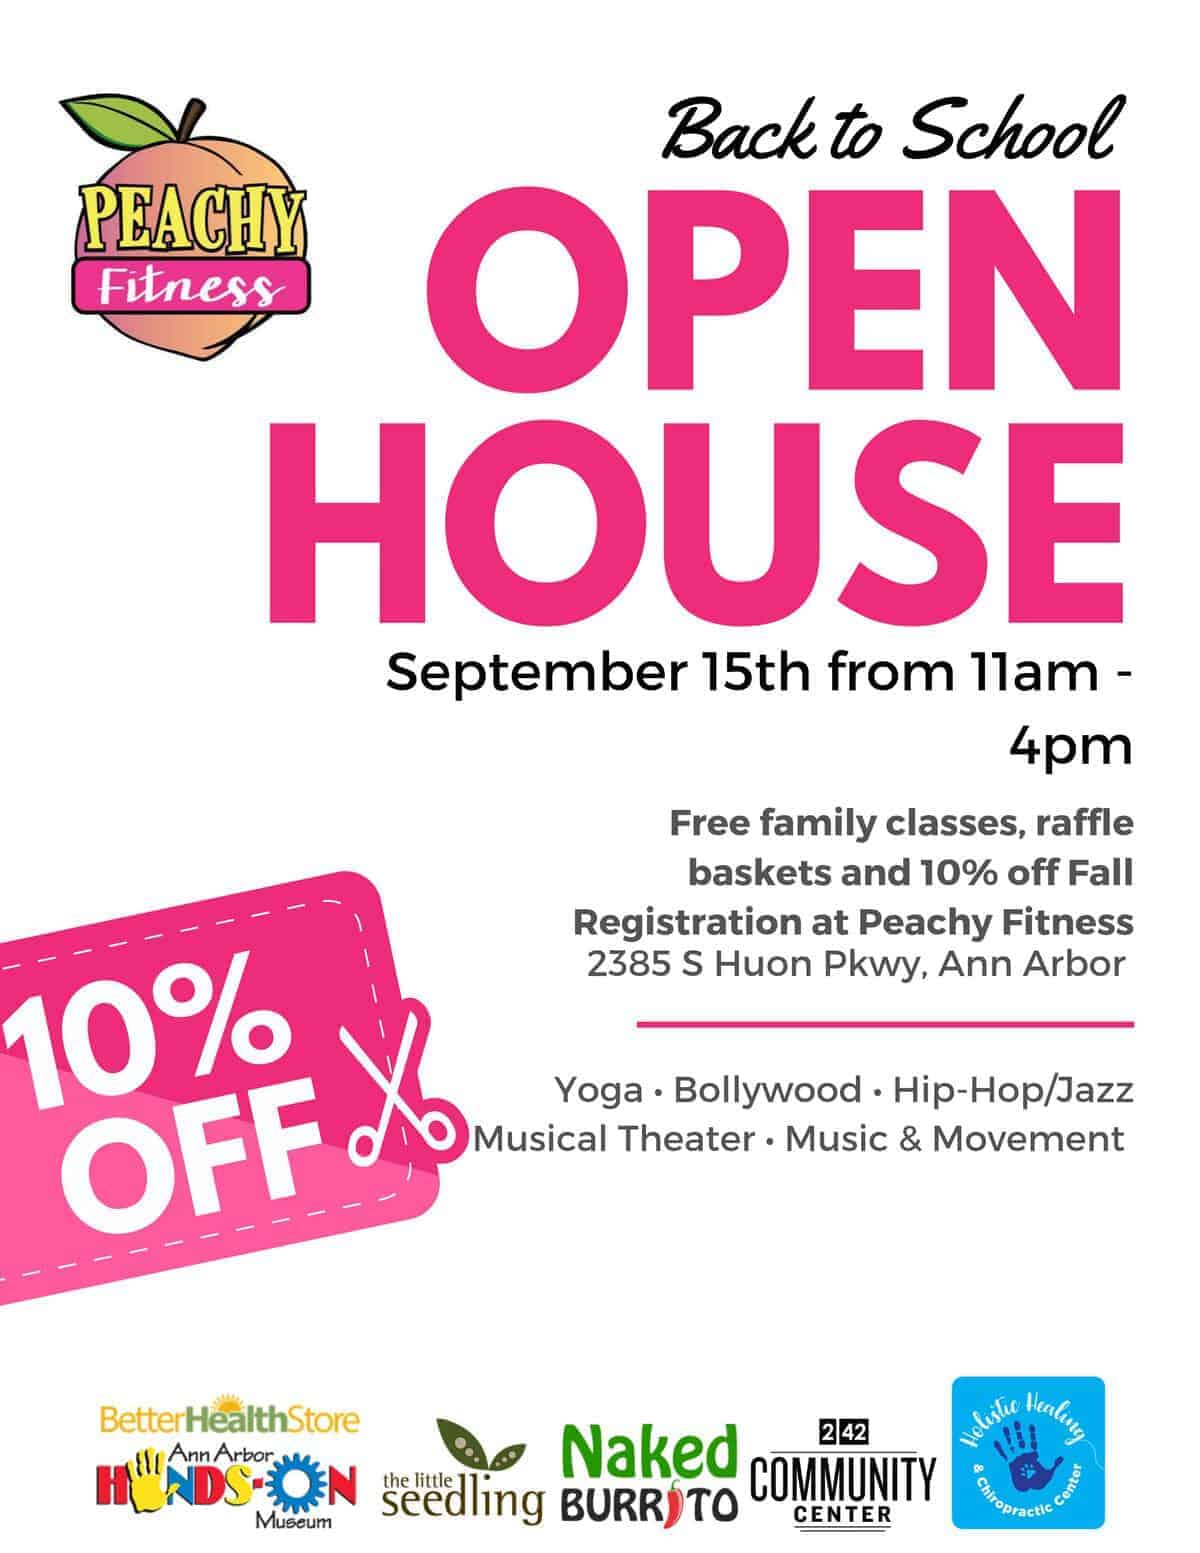 Peachy Fitness Back to School Open House Sunday, September 15 11a-4p